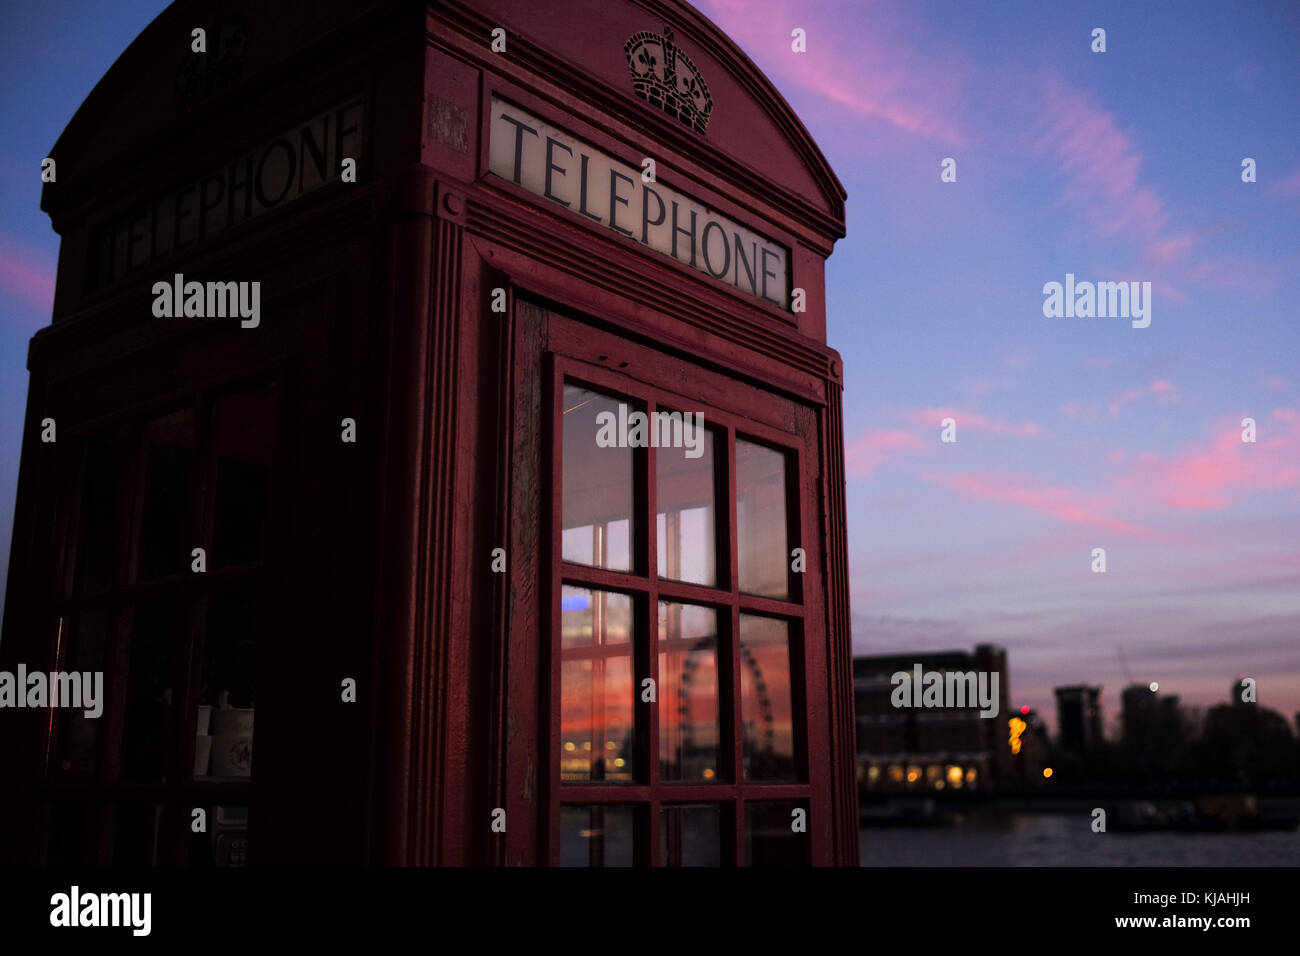 Traditional English telephone red box in London with sunset reflected in windows. - Stock Image